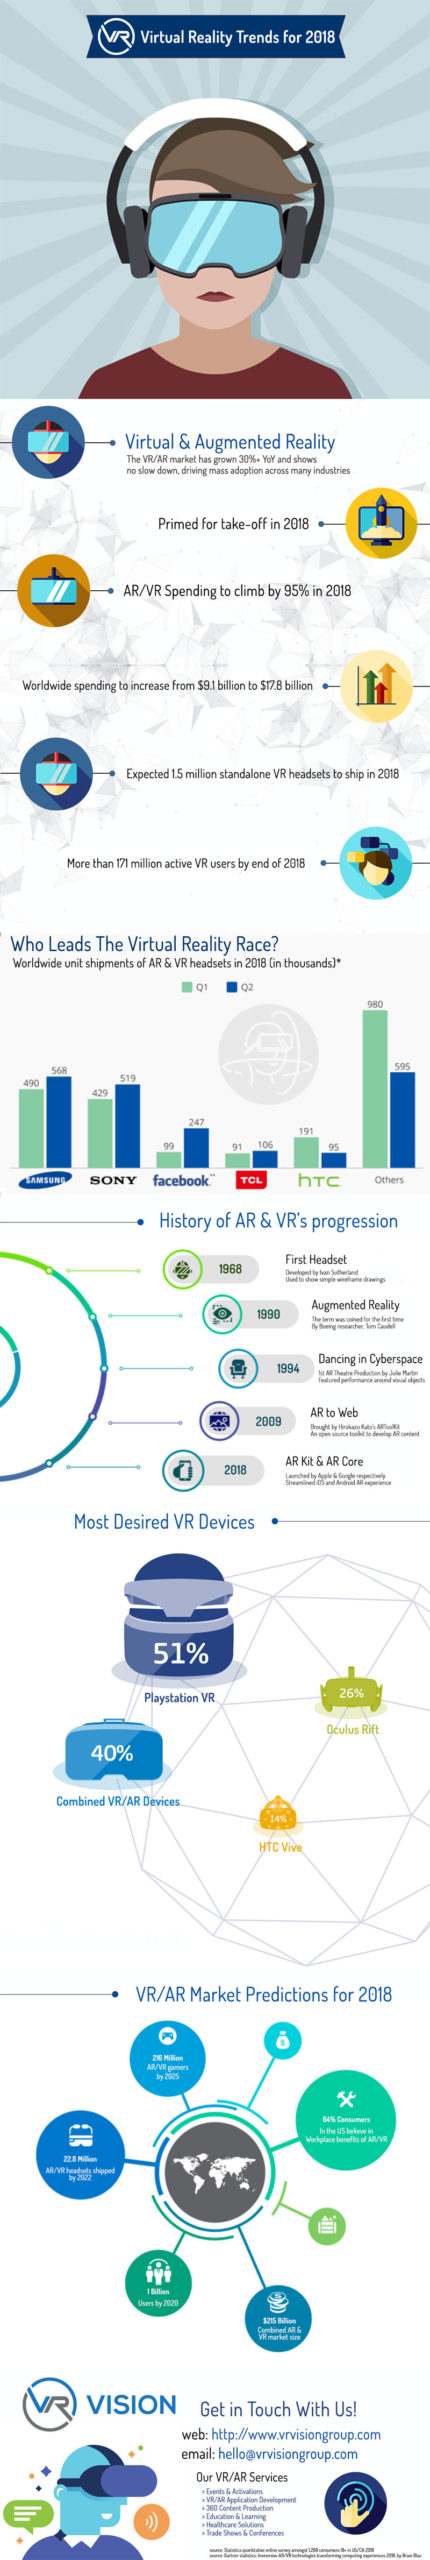 vr ar trends for 2018 infographic